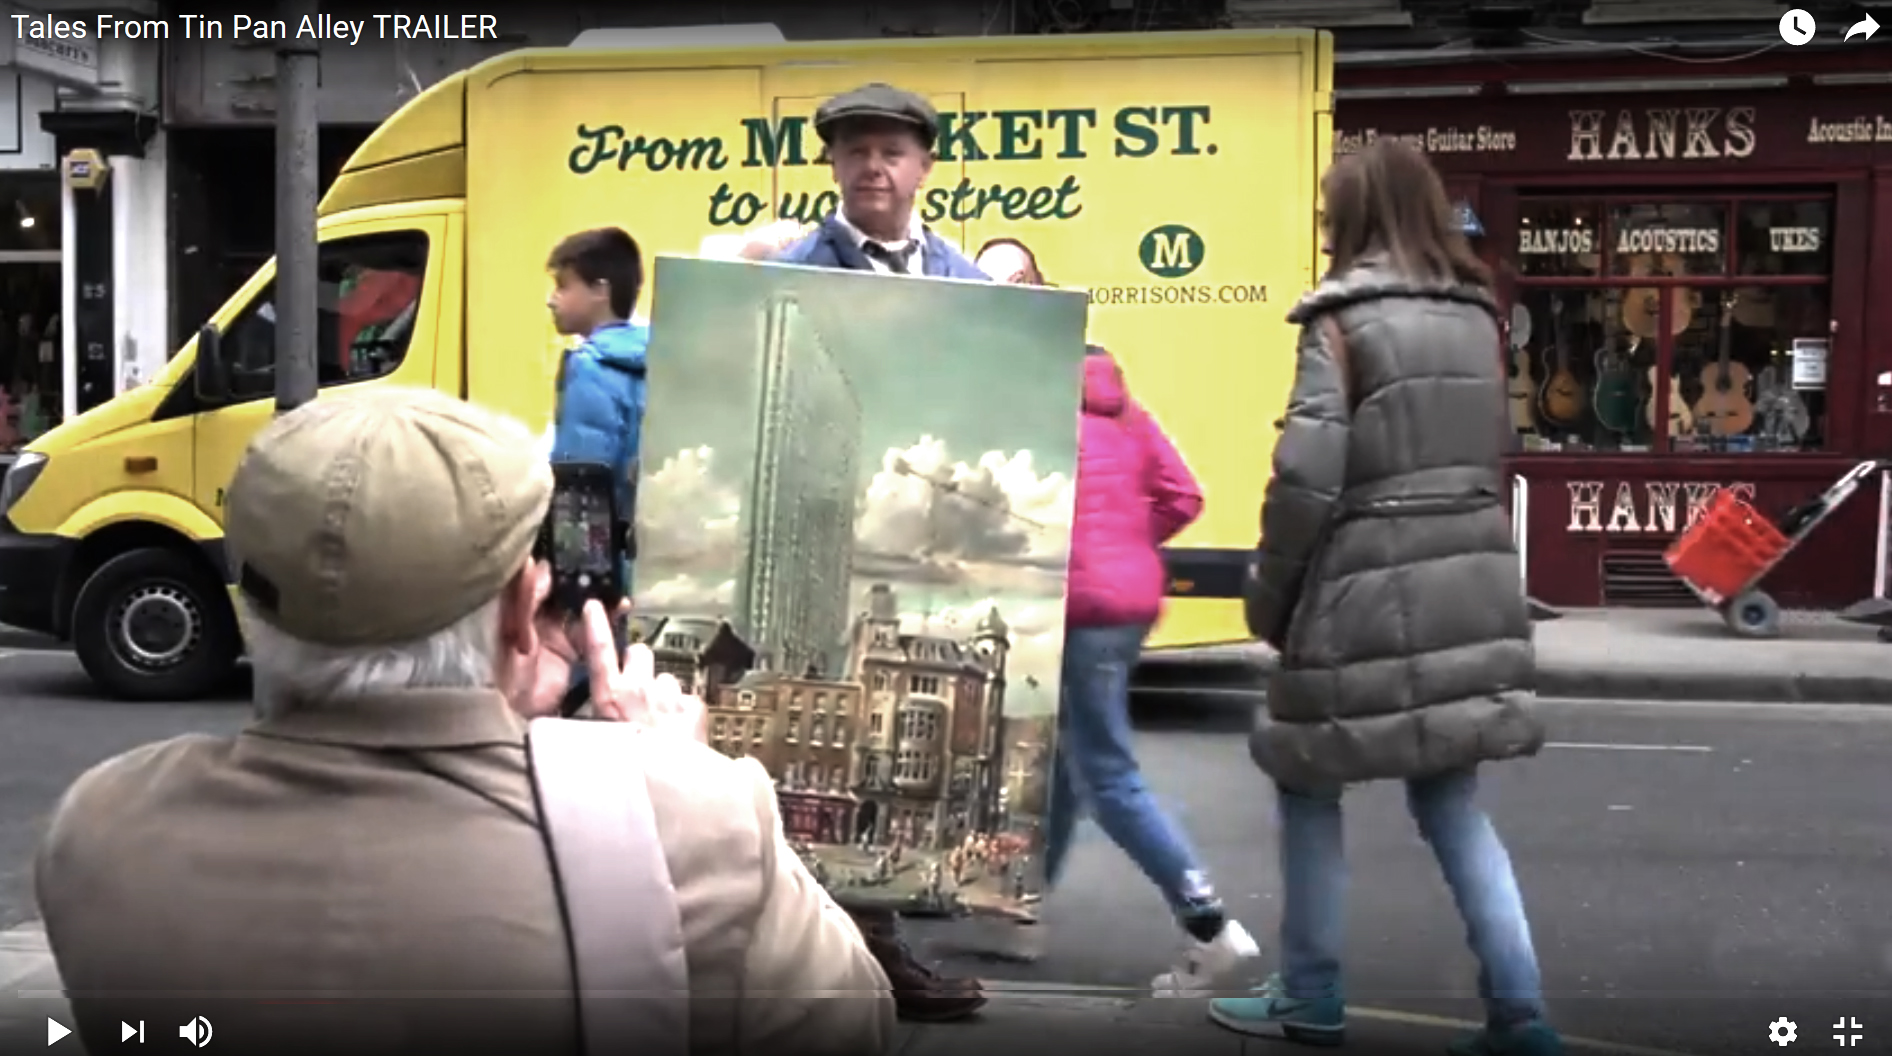 Liam O'Farrell with Denmark Street Painting